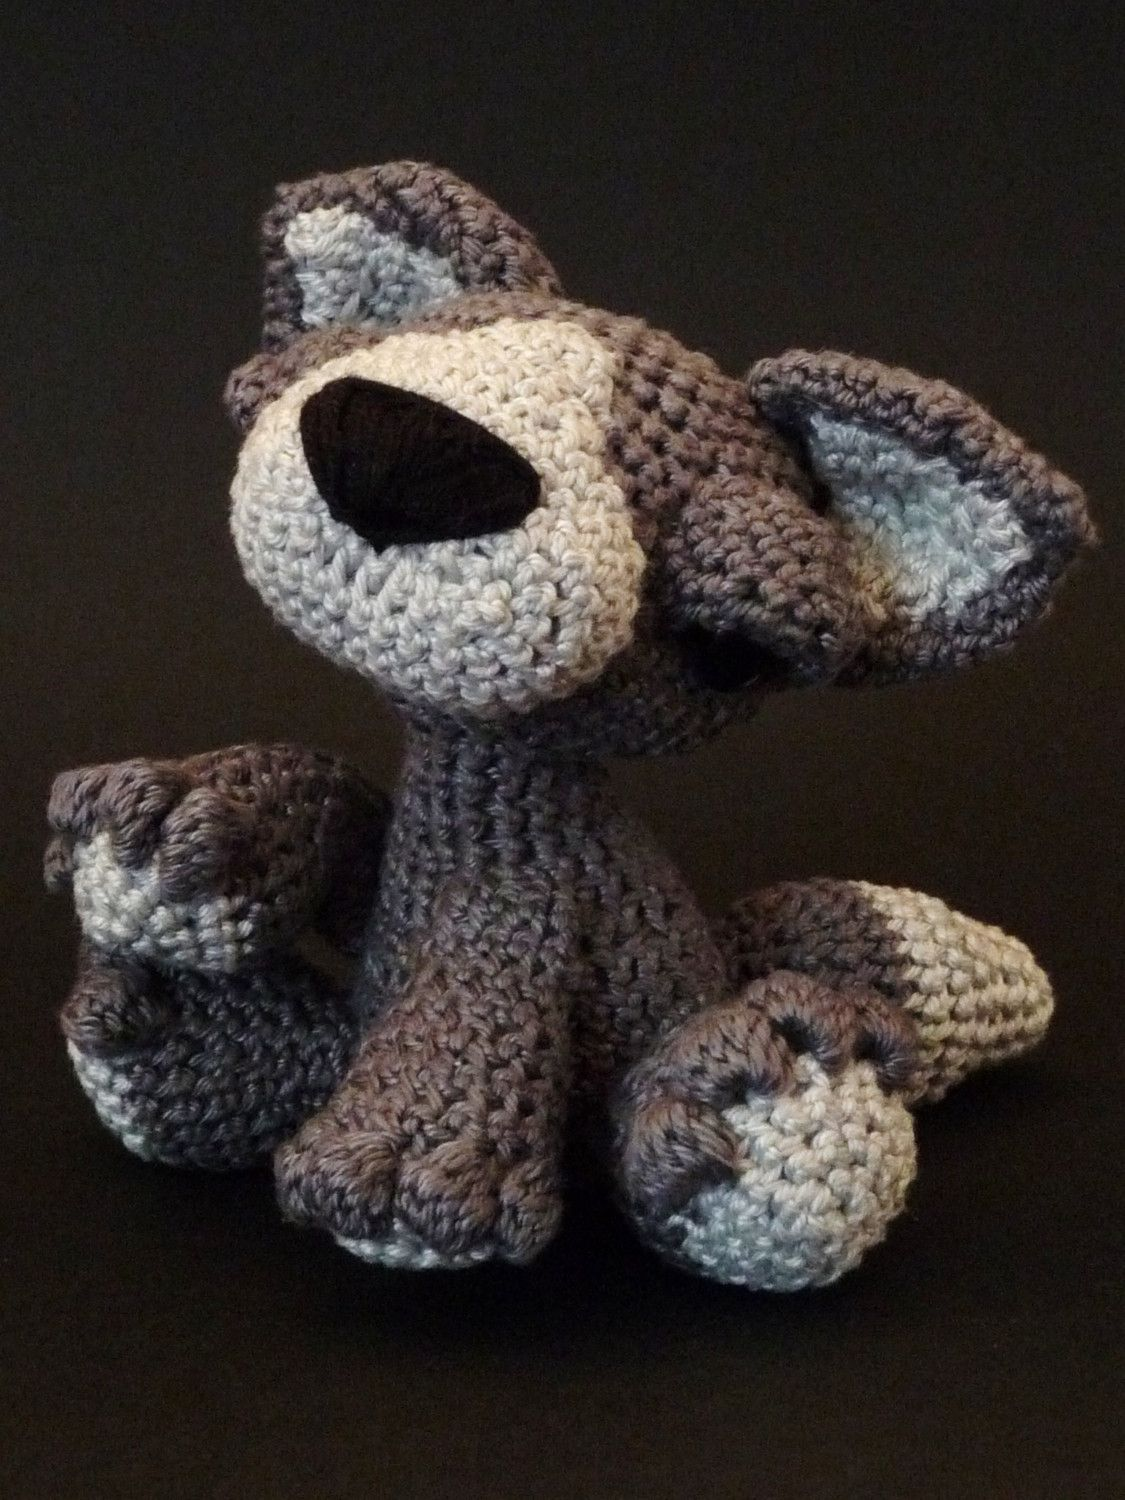 Amigurumi Pattern Lupo - the wolf - INSTANT DOWNLOAD by Lapetite2101 ...